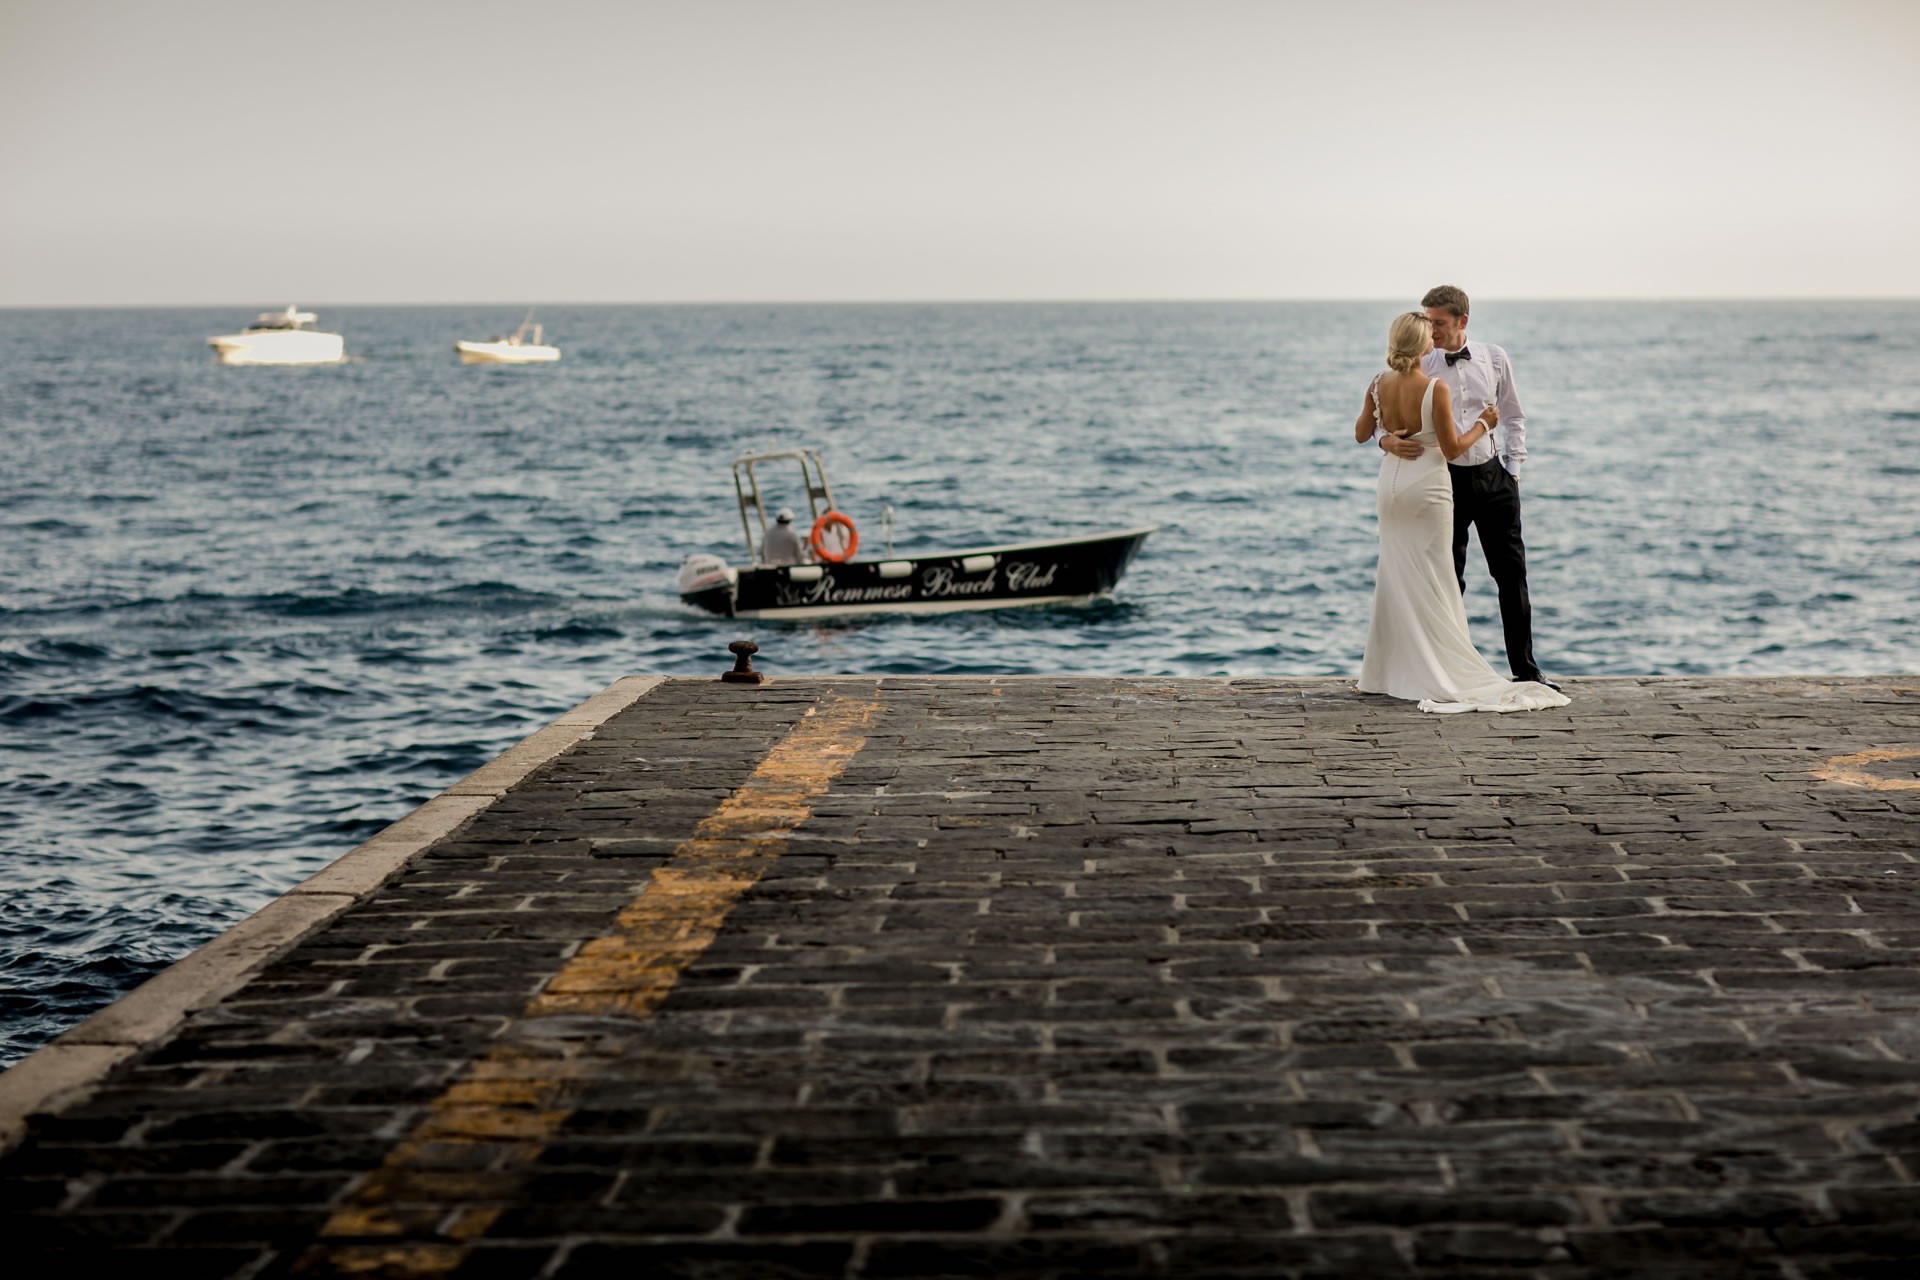 Boat - 42 :: Wedding in Positano. Sea and love :: Luxury wedding photography - 41 :: Boat - 42